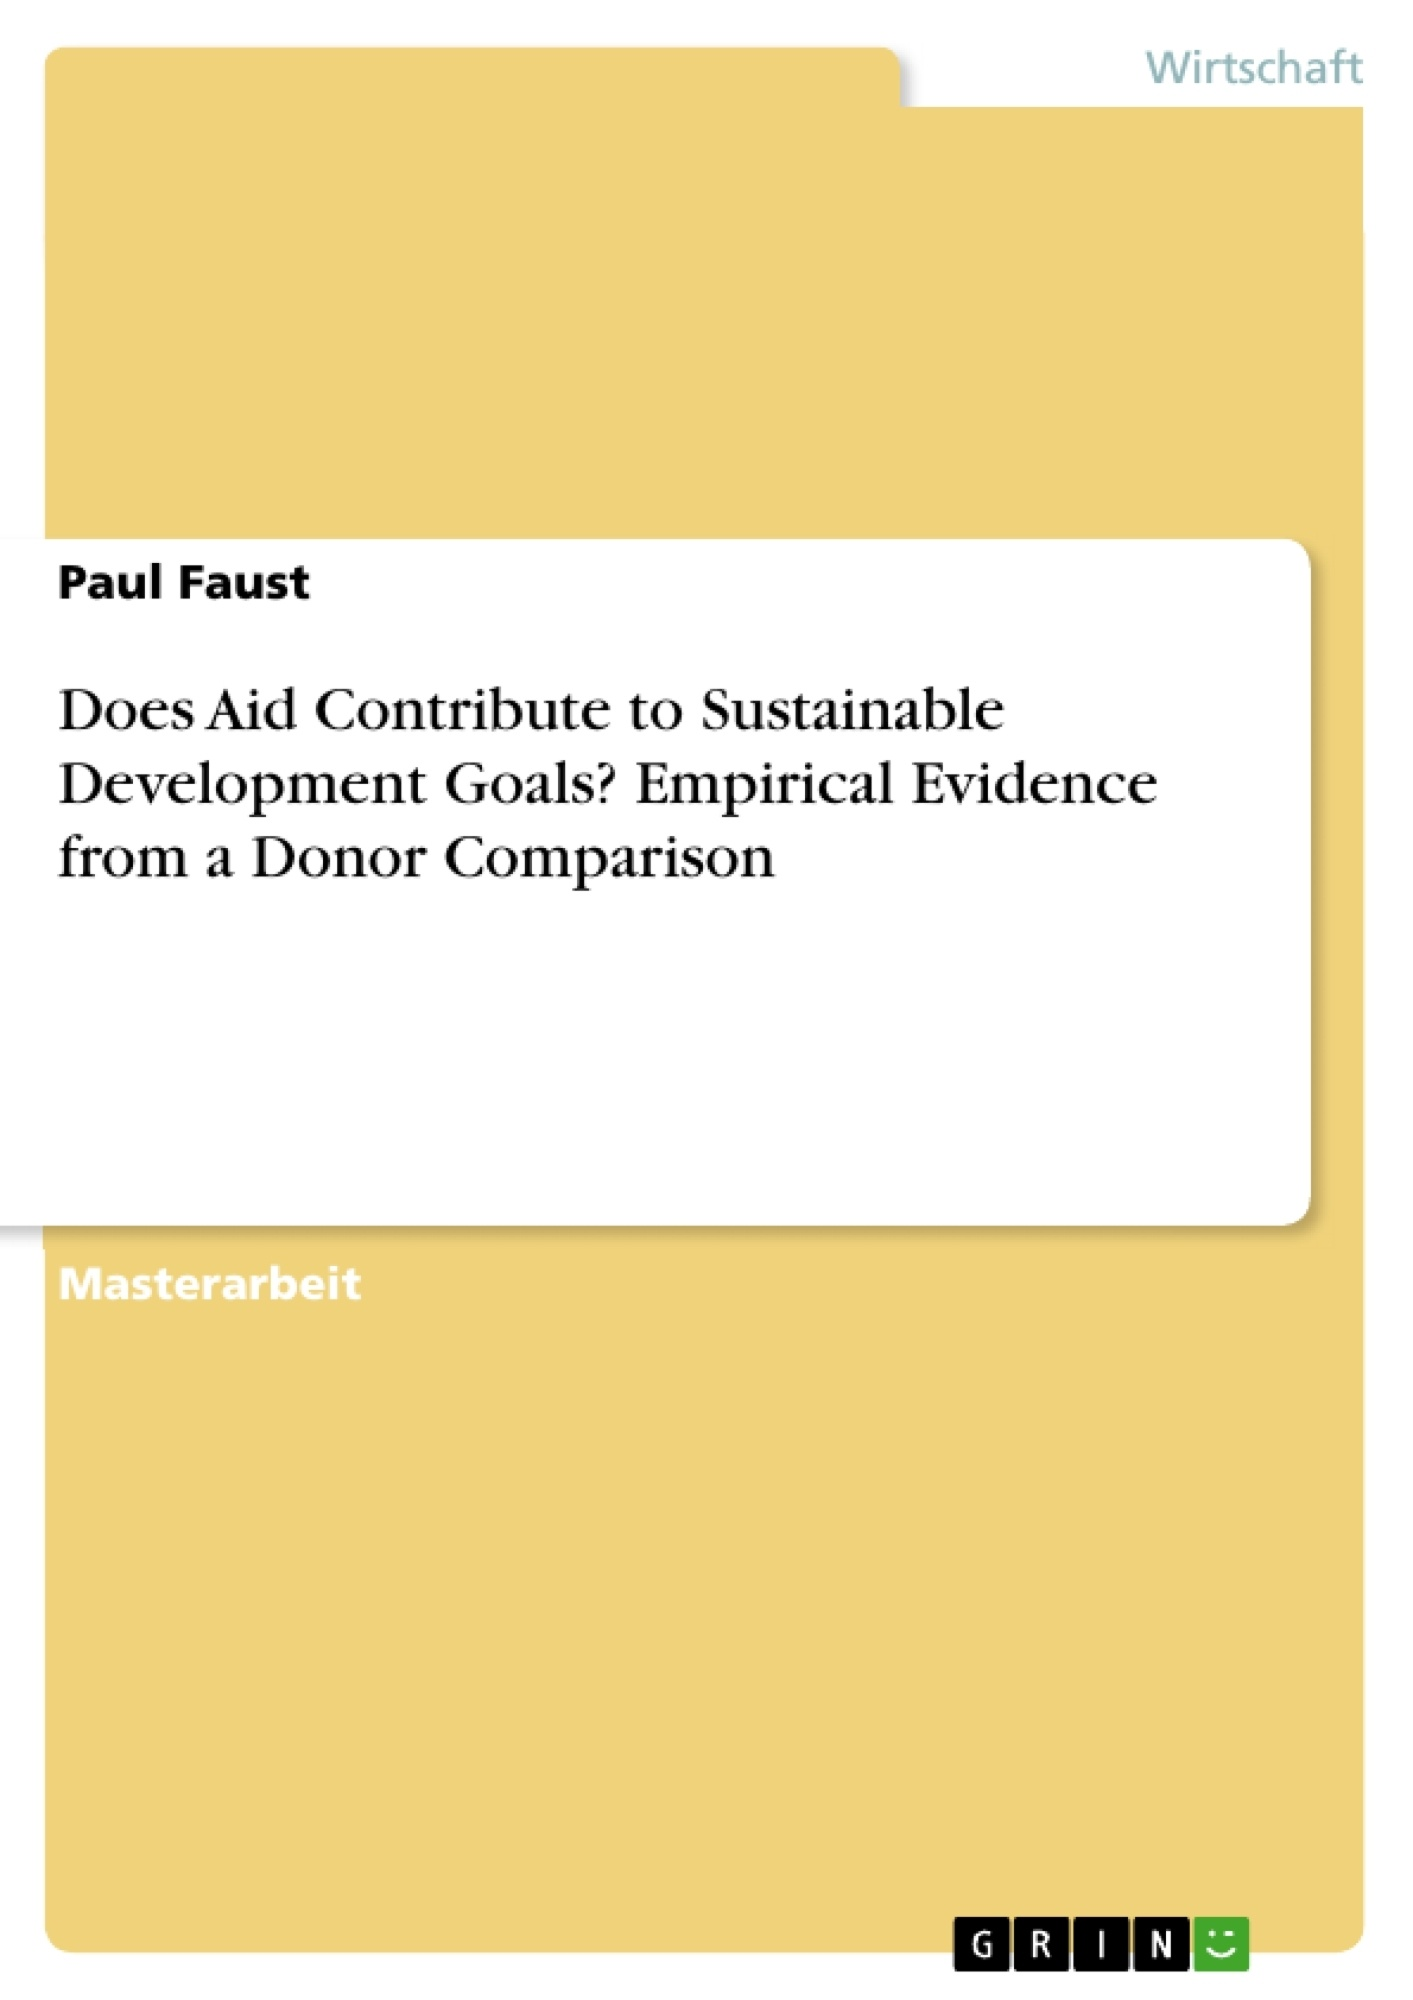 Titel: Does Aid Contribute to Sustainable Development Goals? Empirical Evidence from a Donor Comparison